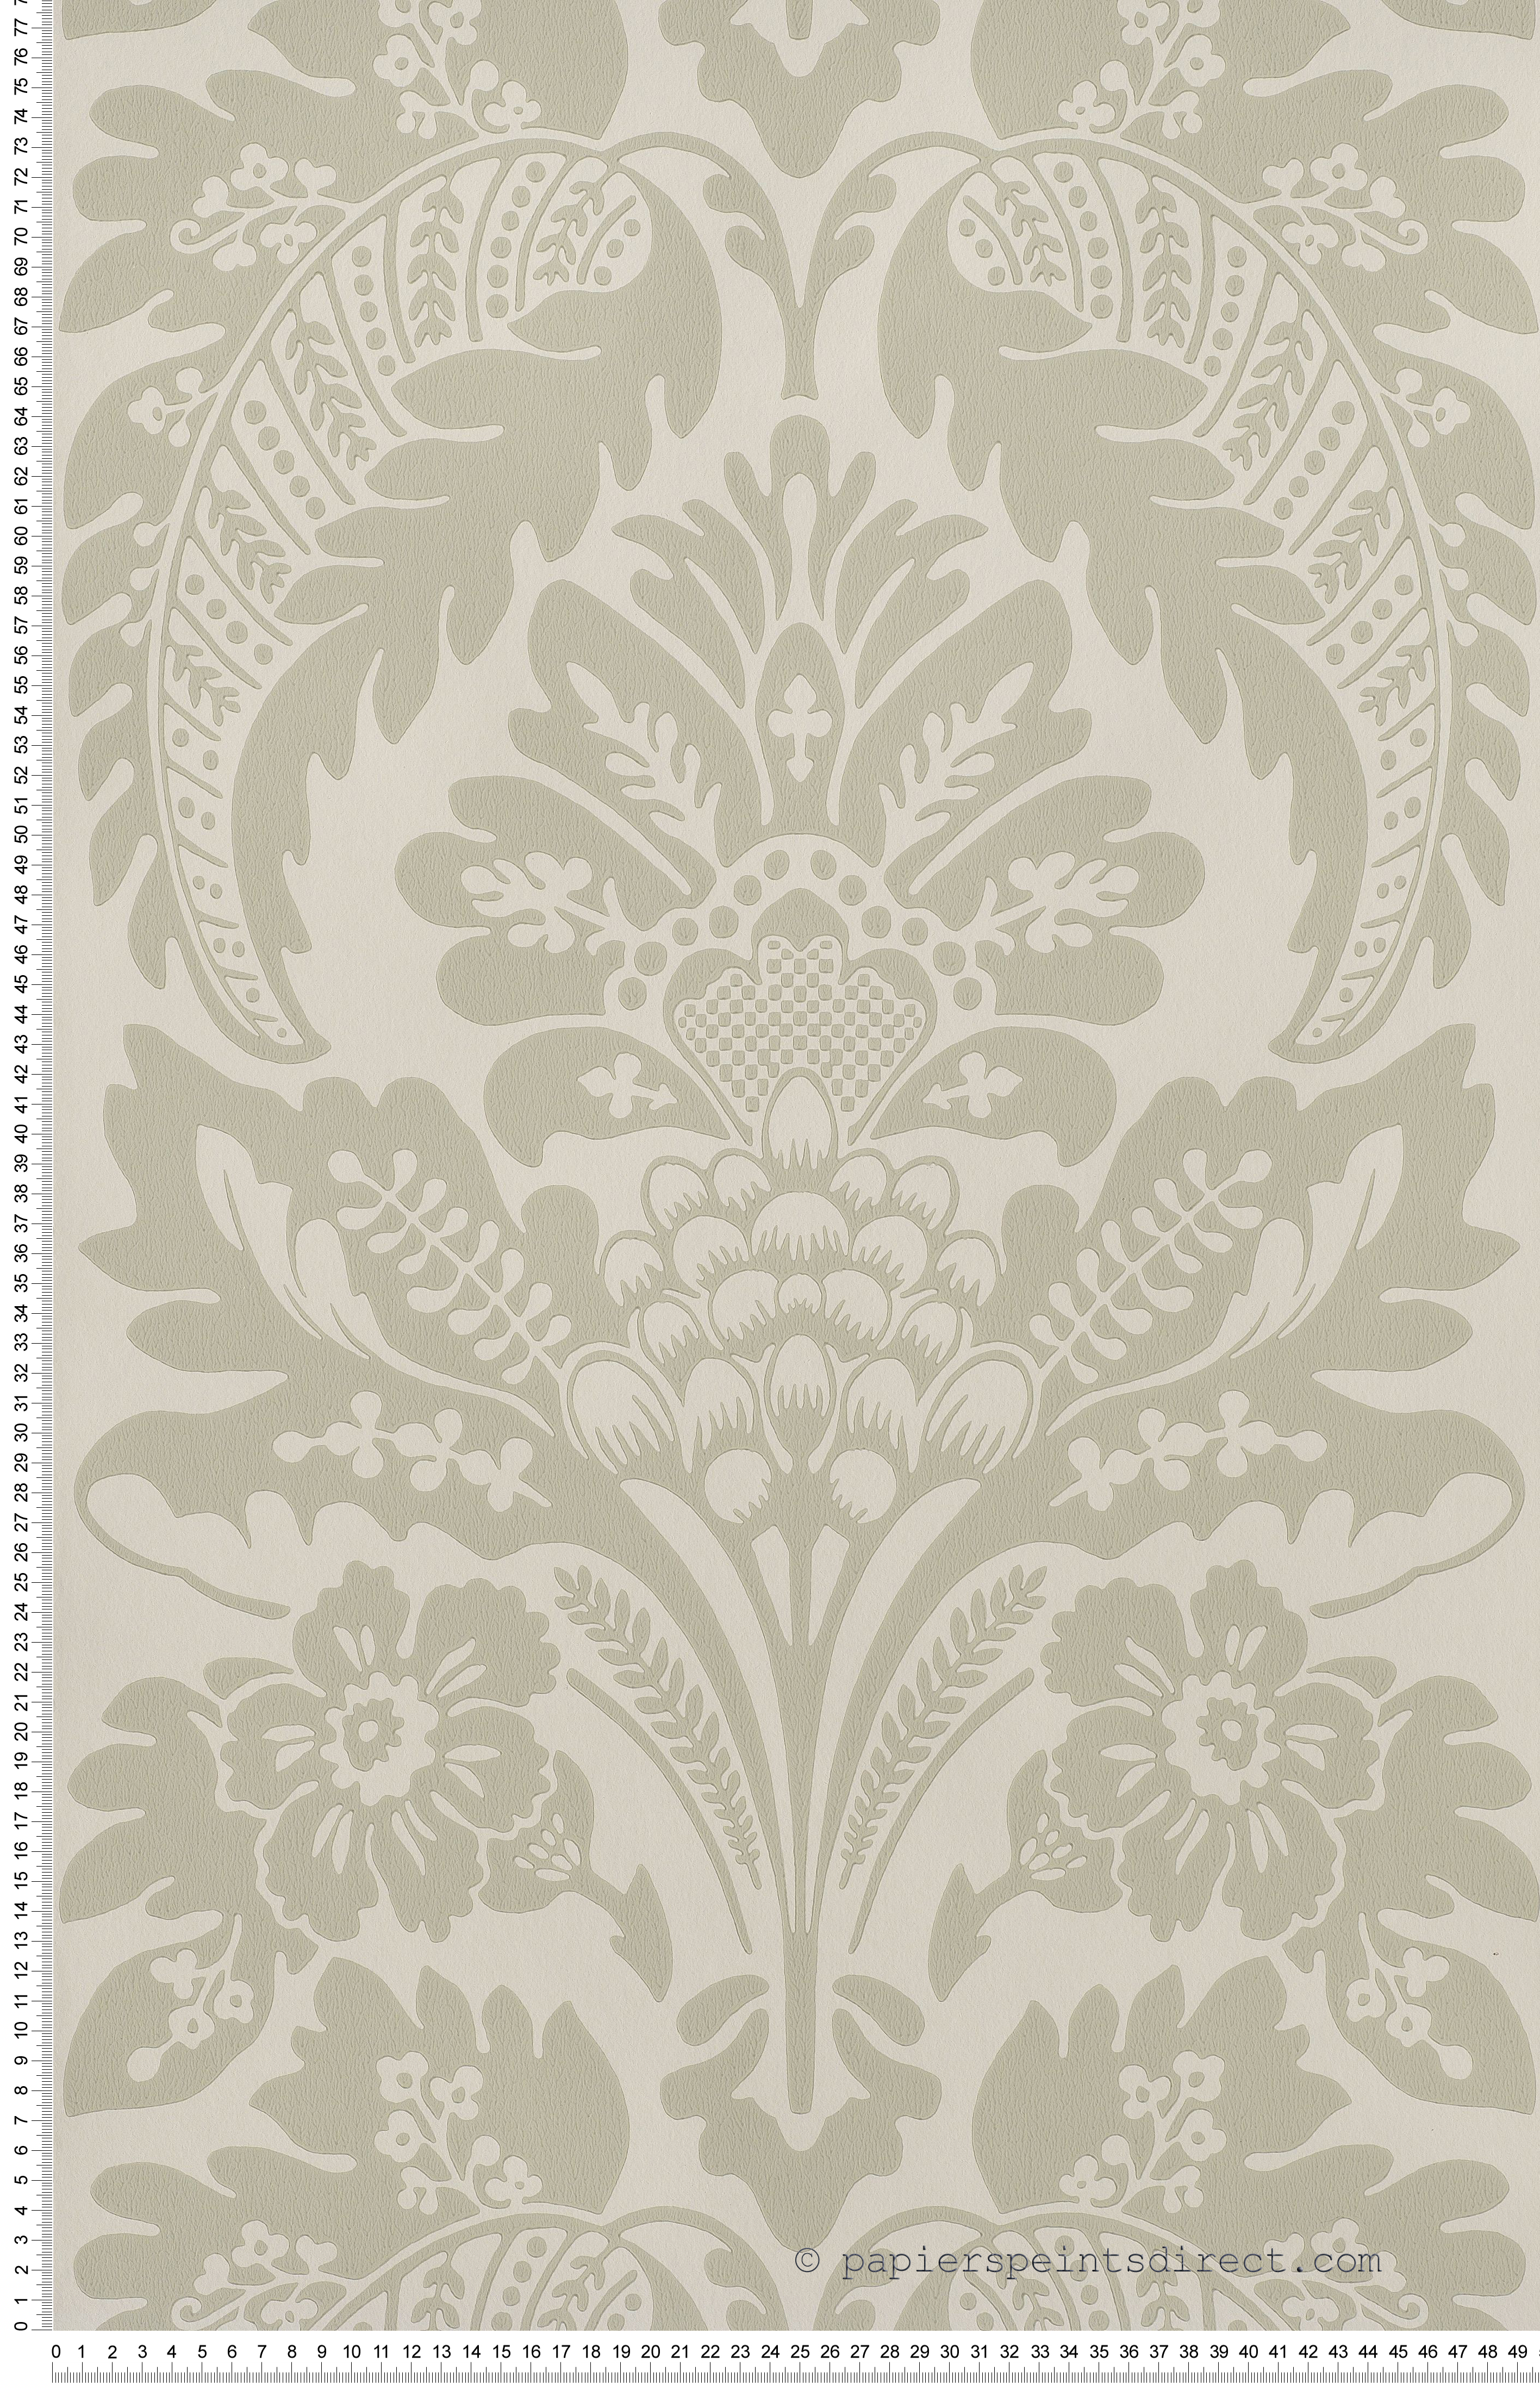 Wilton Acre - papier peint London Wallpapers III